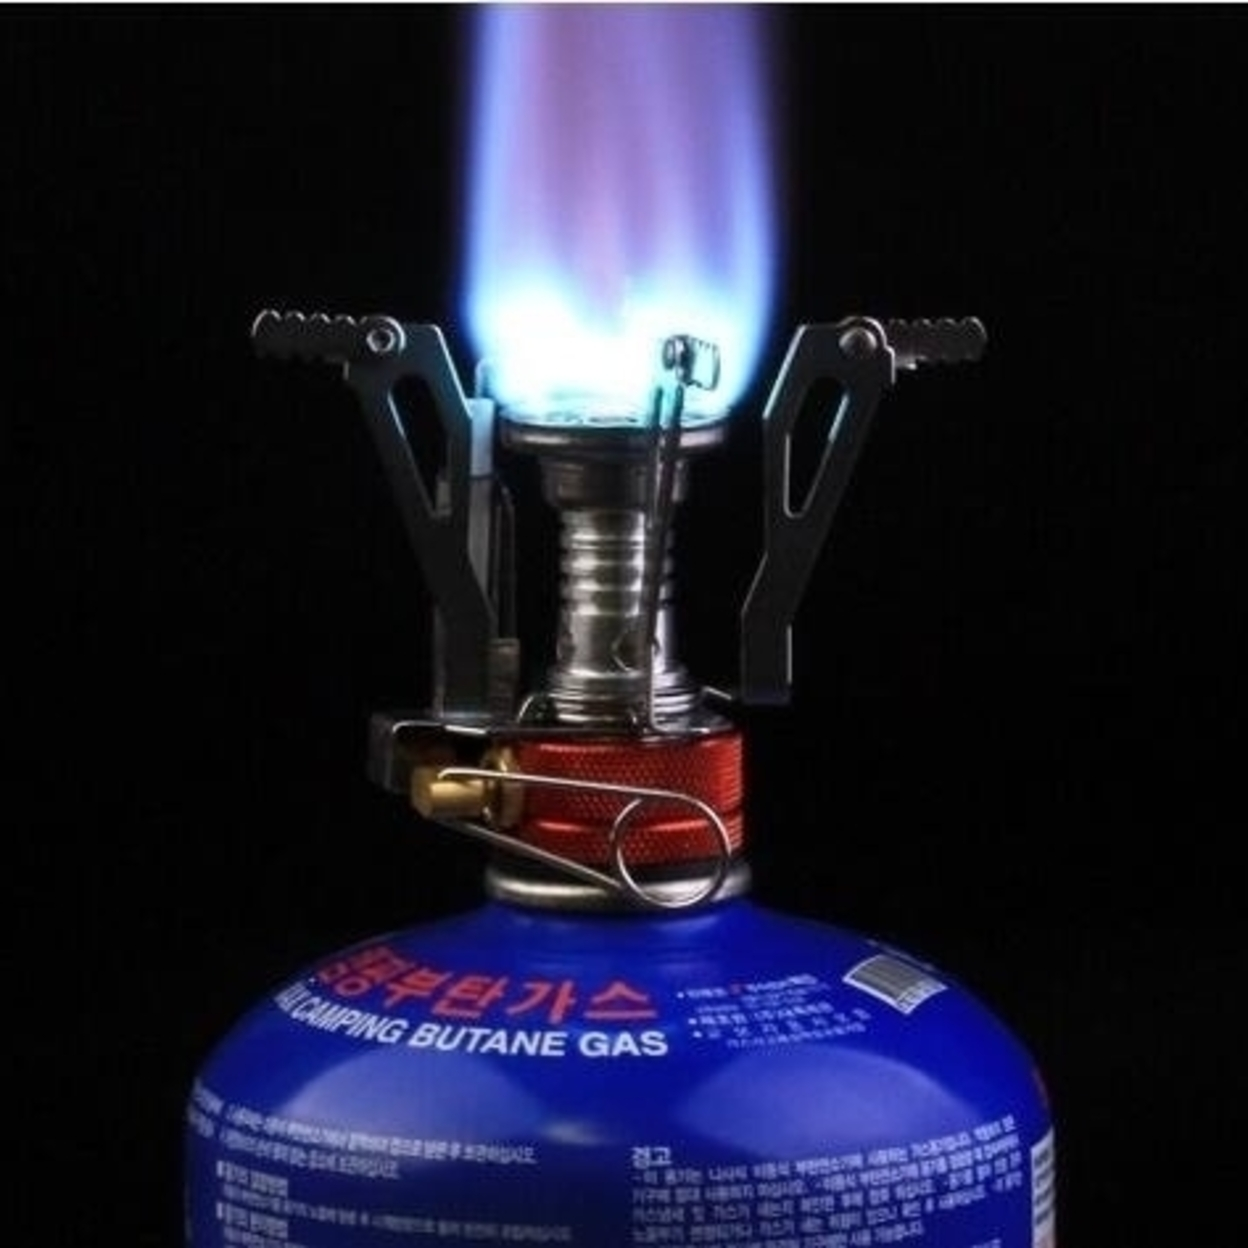 Ultralight Portable Outdoor Backpacking Camping Stoves 59f5f4a12a00e42c690a6d9c